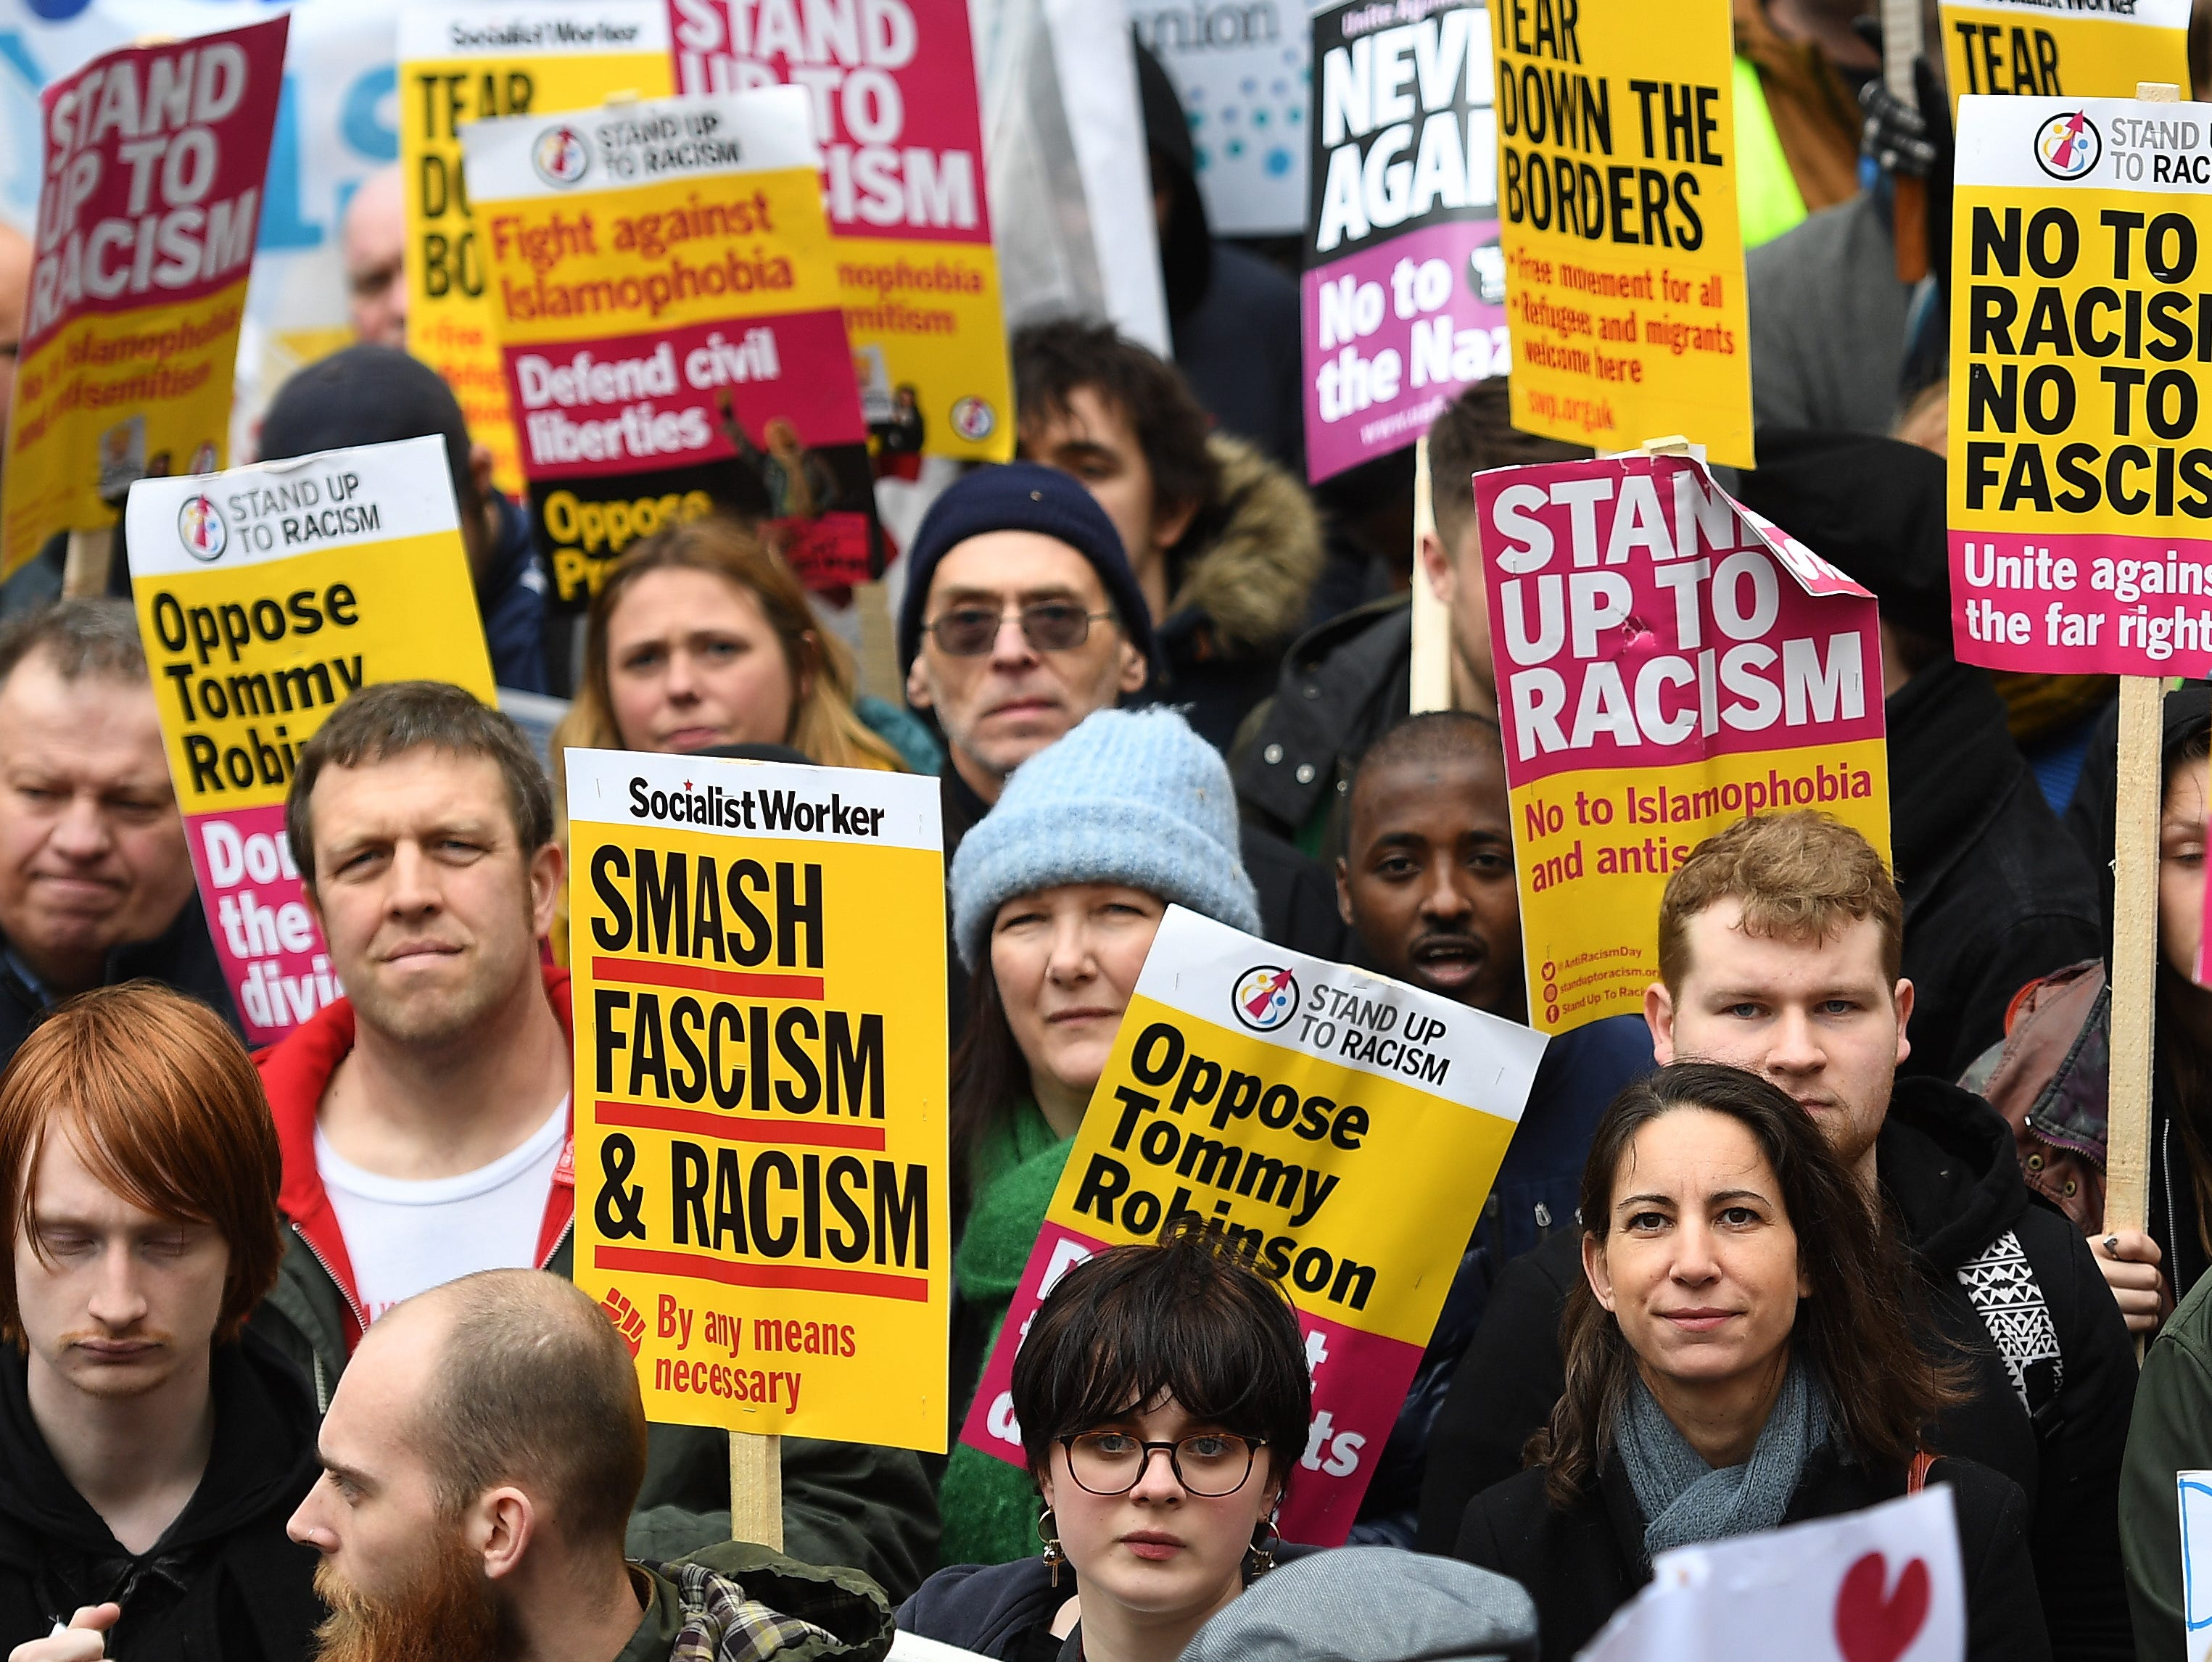 Anti racism protesters stand during a UN anti racism day march in London, Britain on March 16, 2019. Marches across the world took place during UN anti racism day condemning the attacks on muslims in New Zealand this week. At least 49 people were killed by a gunman, believed to be Brenton Harrison Tarrant, and 20 more injured and in critical condition during the terrorist attacks against two mosques in Christchurch, New Zealand during the Friday prayers on 15 March.